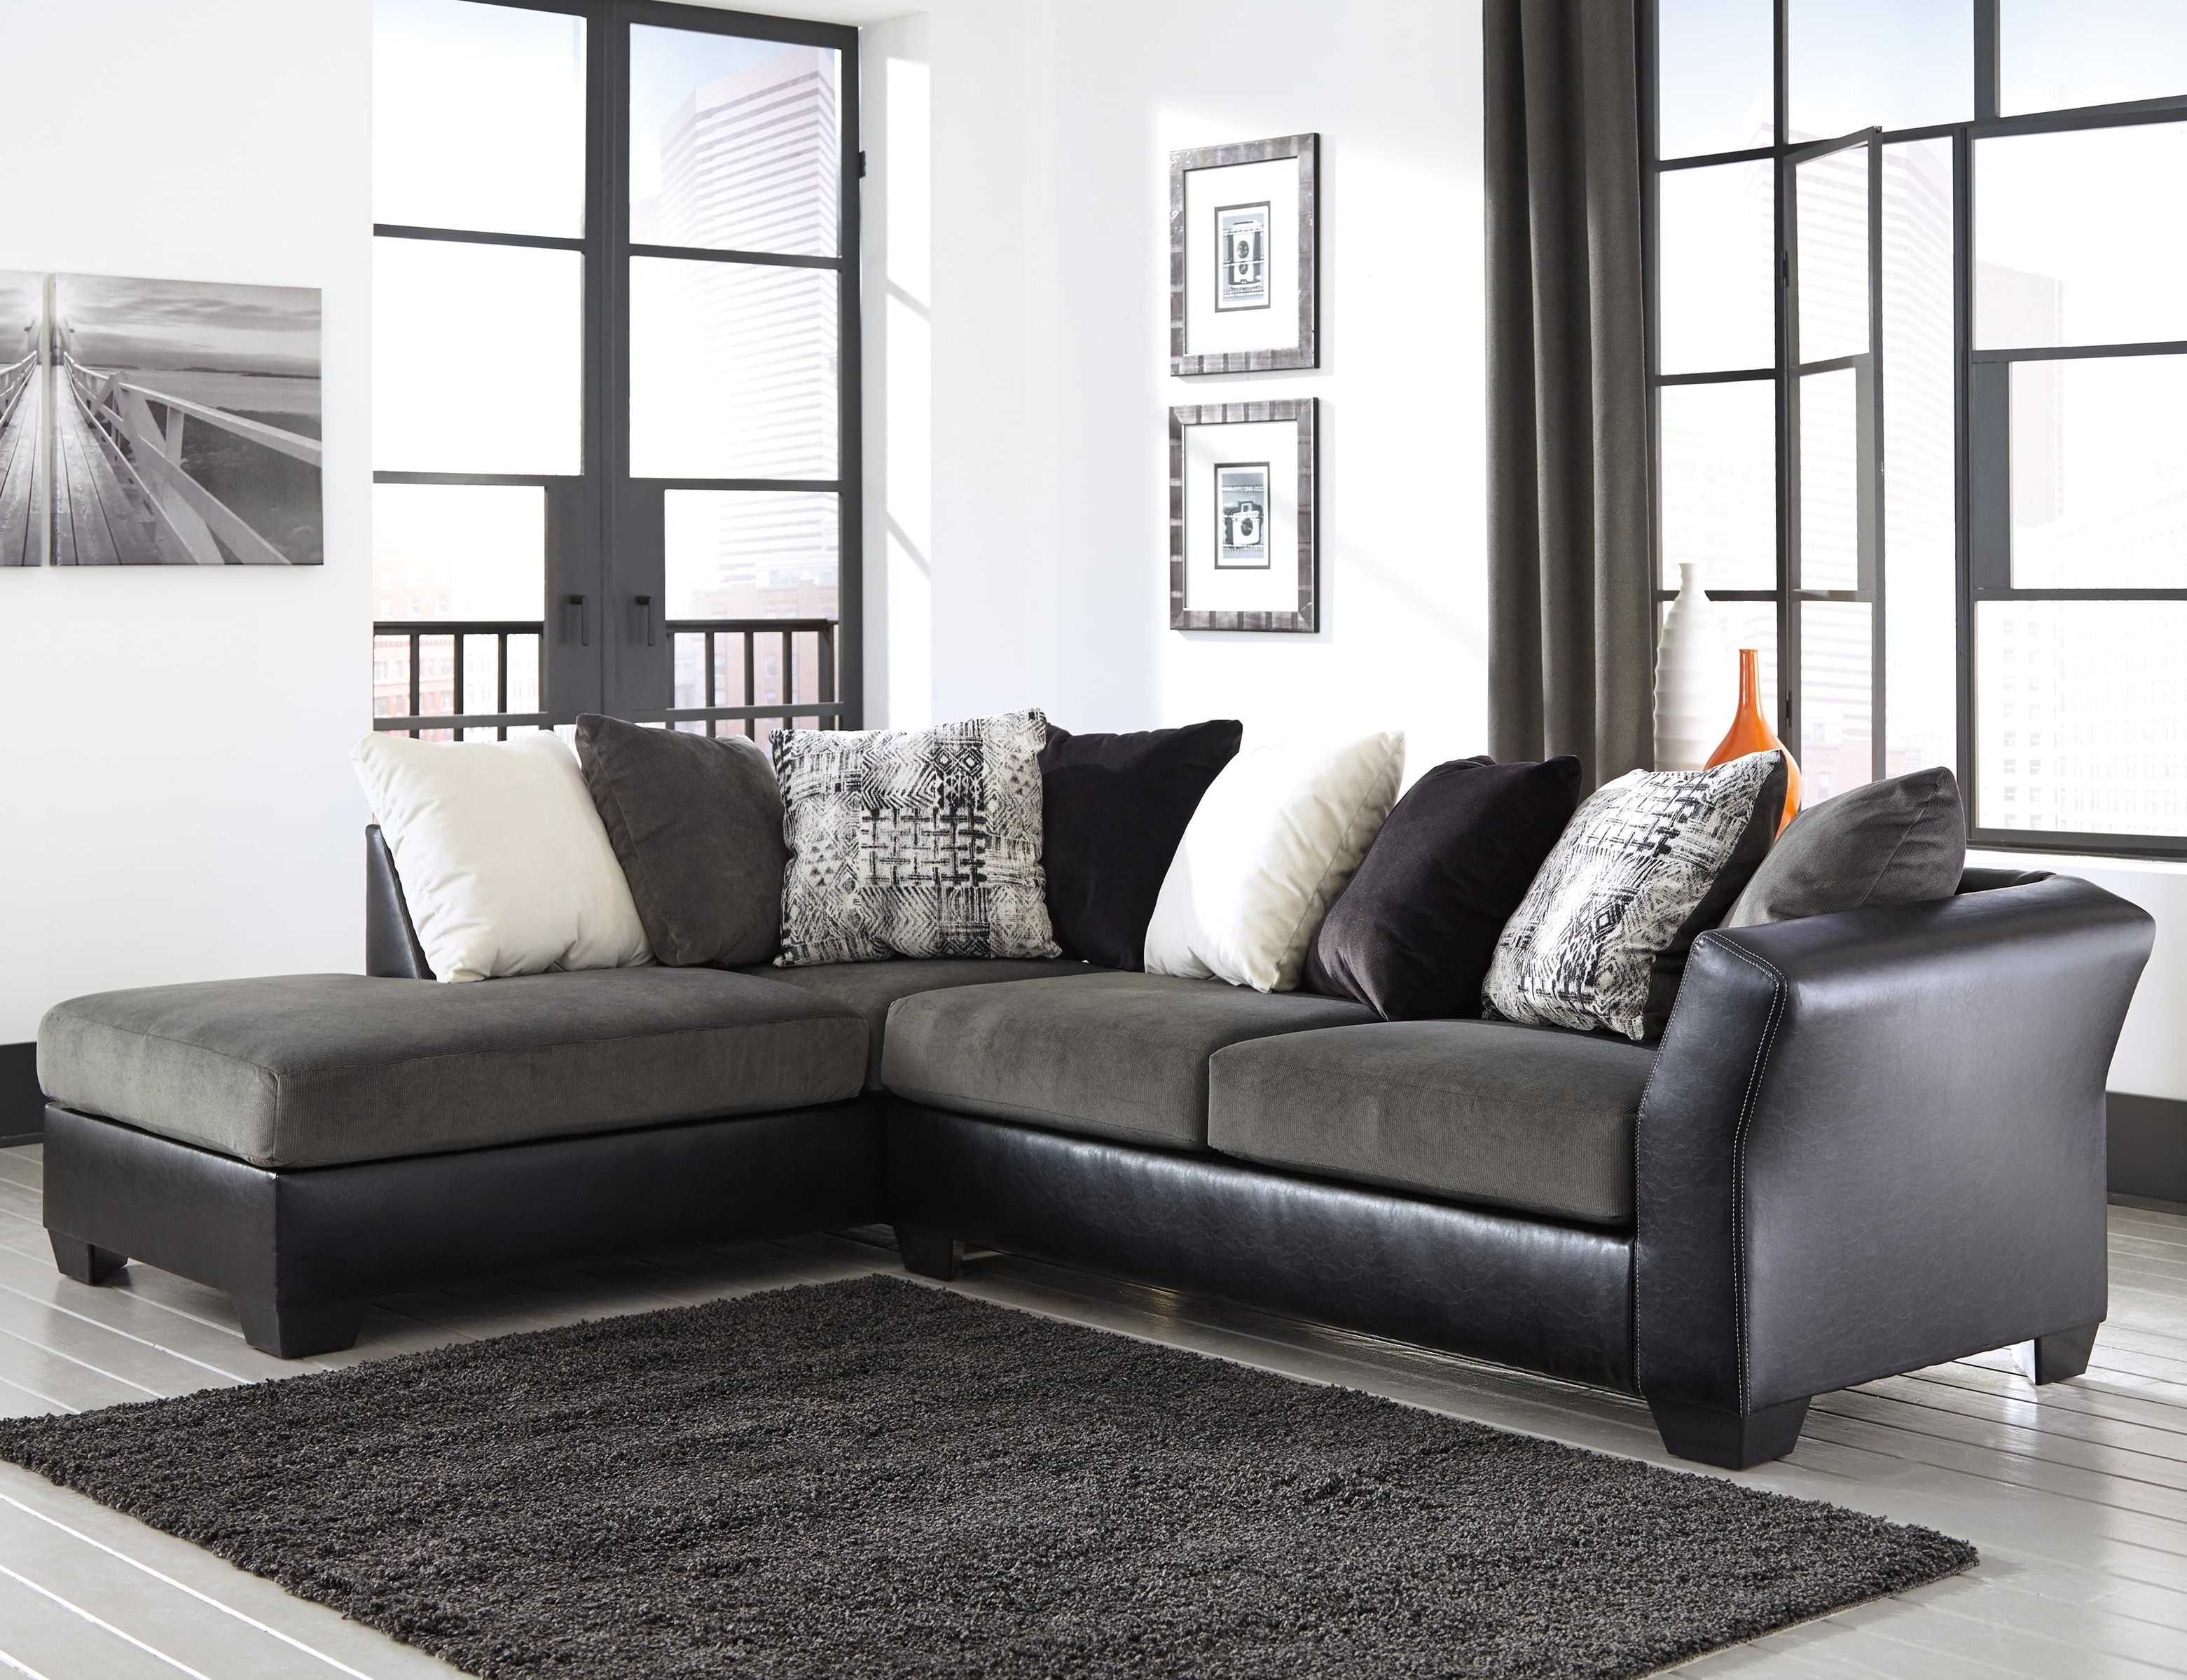 Armant 2 Piece Sectional With Right Chaisesignature Design Regarding Newest Murfreesboro Tn Sectional Sofas (View 3 of 20)